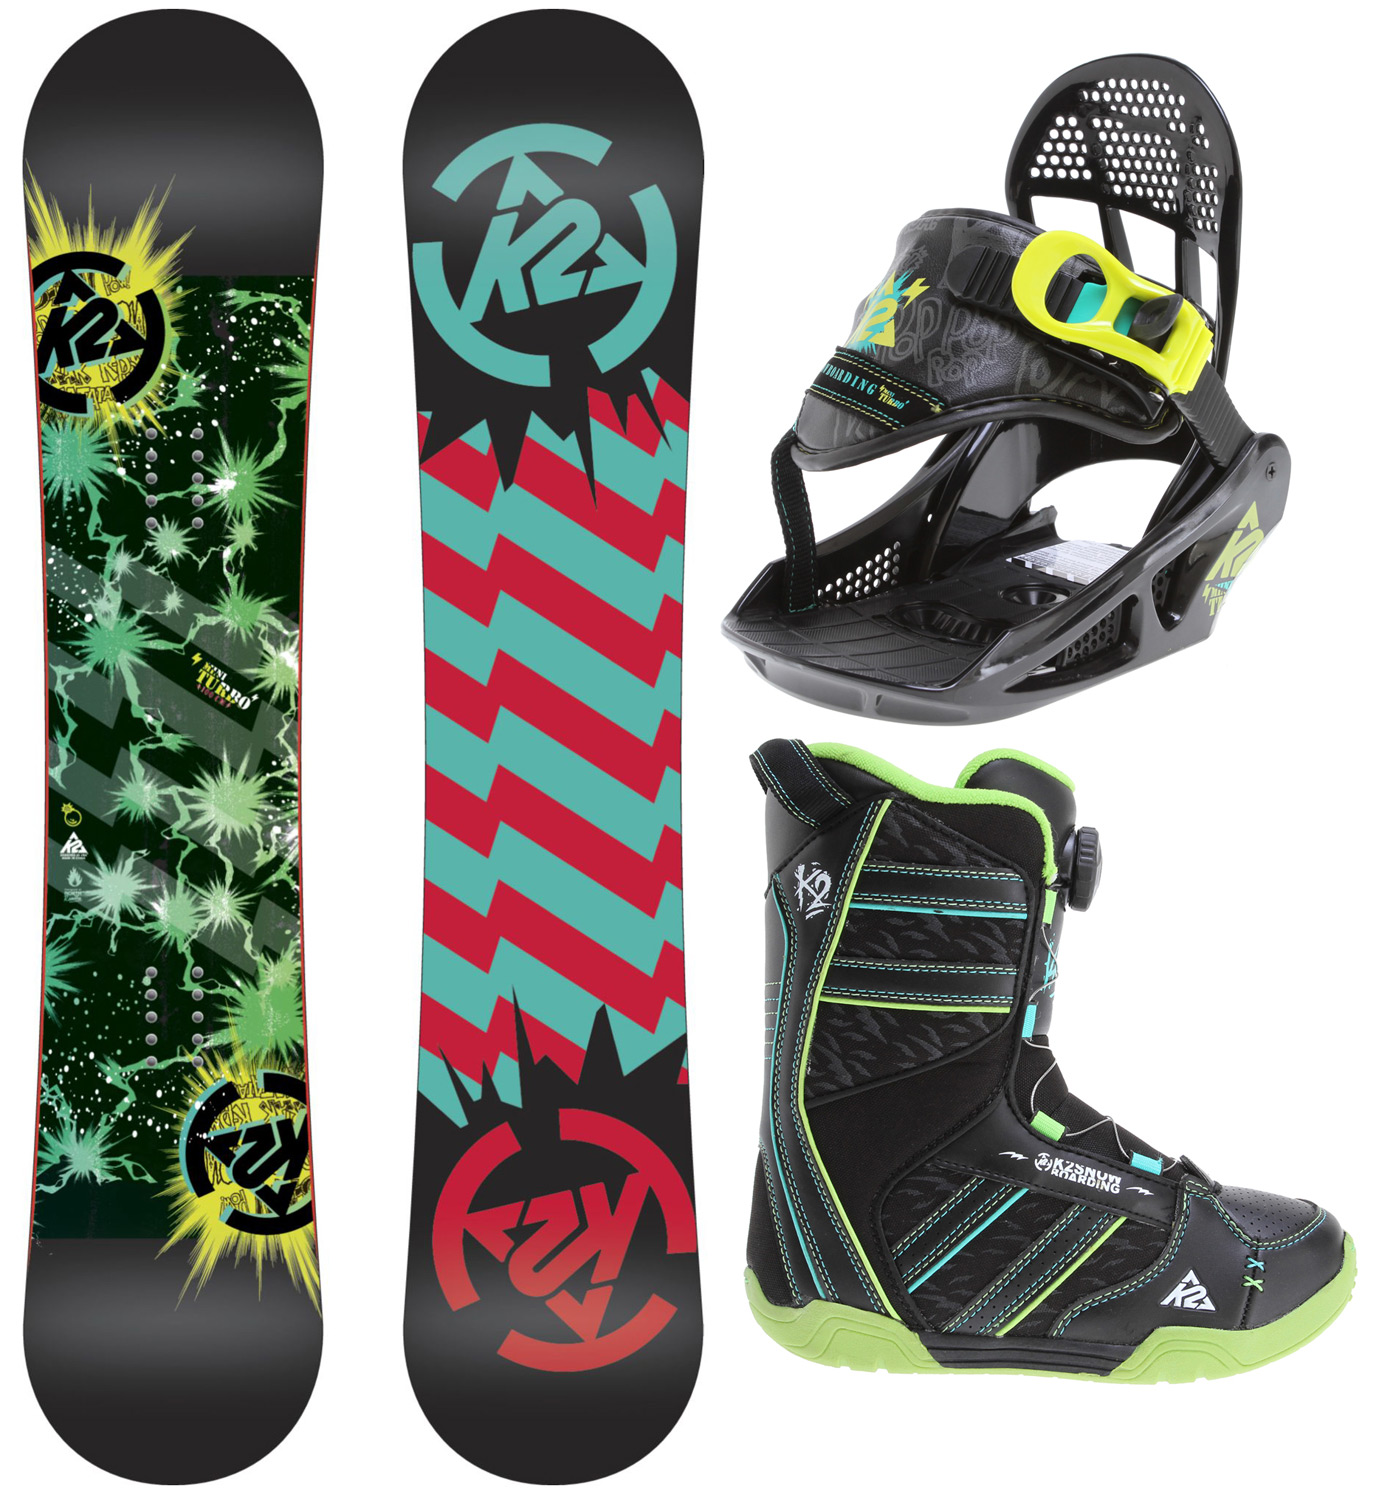 "Snowboard Getting kids up on the hill warm and happy is always the first step to a life of snowboarding. The Mini Turbo Grompack is the first setup designed with this in mind. From standout innovations like the Noodle board Construction to the little details like a loop on the toe of the boot for the leash to attach, it's all designed to be easy to use and enhance the day of snow-sliding fun for both kids and parents.Key Features of the K2 Mini Turbo Grom Pack Snowboard w/ Boots/Bindings: BASELINE: Catch Free Rocker CONSTRUCTION: Hybrilight Noodle SHAPE: Twin Dual Progressive STANCE: Centered CORE: Noodle GLASS: Biax / Biax BASE: 2000 Extruded BASE: 3"" LINER FIT: Boa LACING SYSTEM: Internal J- Bars OUTSOLE: Heel & Tongue Pull for easy entry FOOTBED: EVA Insole CHASSIS: Groms Chassis HIGHBACK: Grom Highback ANKLE STRAP: Single Strap RATCHET: EZ Feed Boot Flex: 1 Length (cm): 90, 100, 110, 120, 130 Effective Edge (cm): 70.04 (90), 77.66 (100), 85.28 (110), 95.44 (120), 103.06 (130) Tip/Tail Width (cm):23.14 (90), 24.23 (100), 25.22 (110), 26.42 (120), 27.31 (130) Waist Width (cm): 20.2 (90), 21.0 (100), 21.7 (110), 22.40 (120), 23.0 (130) Sidecut (m): 4.0 (90), 4.5 (100), 5.0 (110), 5.5 (120), 6.0(130) - $217.95"